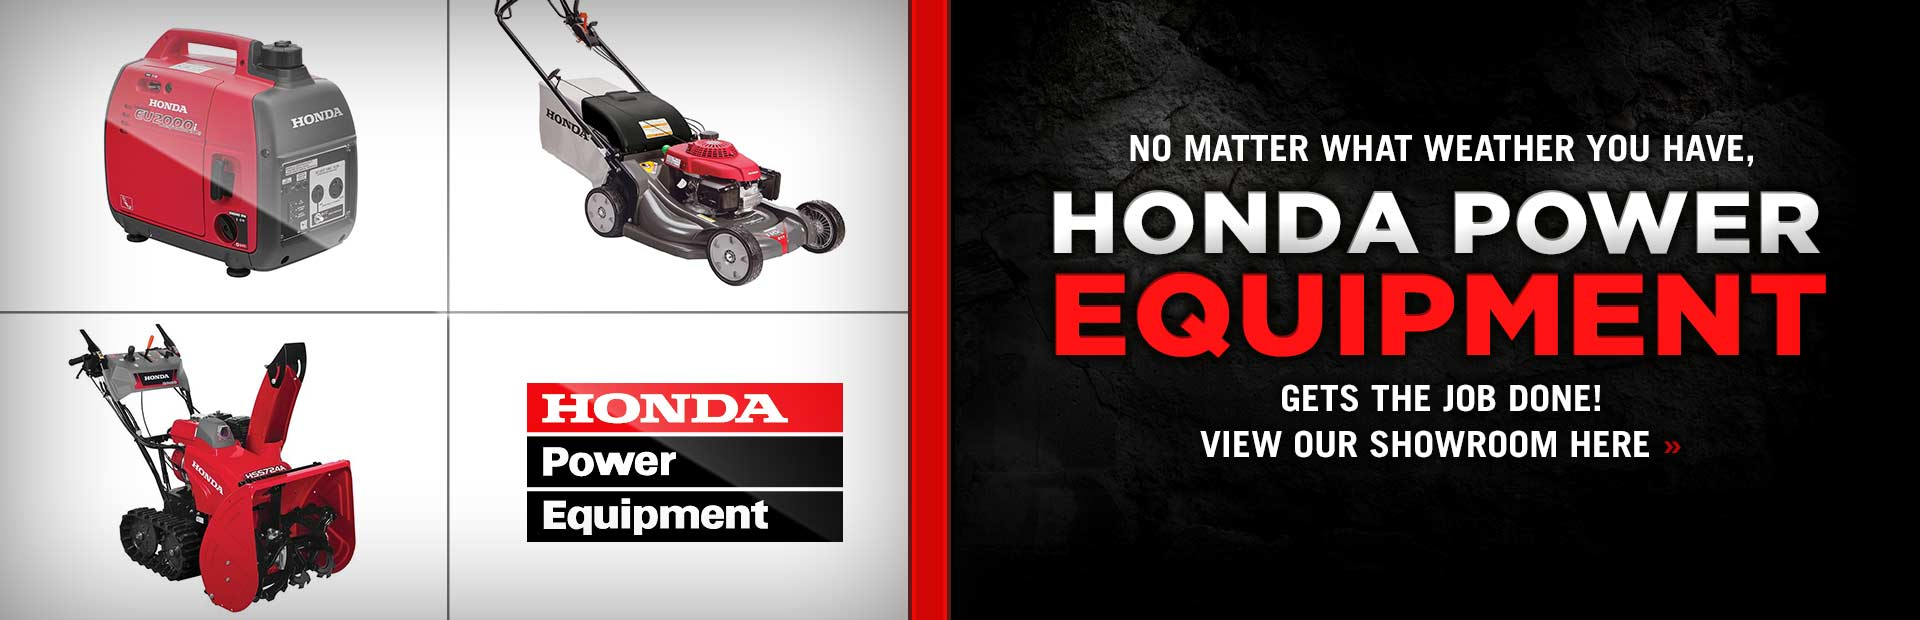 honda power equipment com products manuals